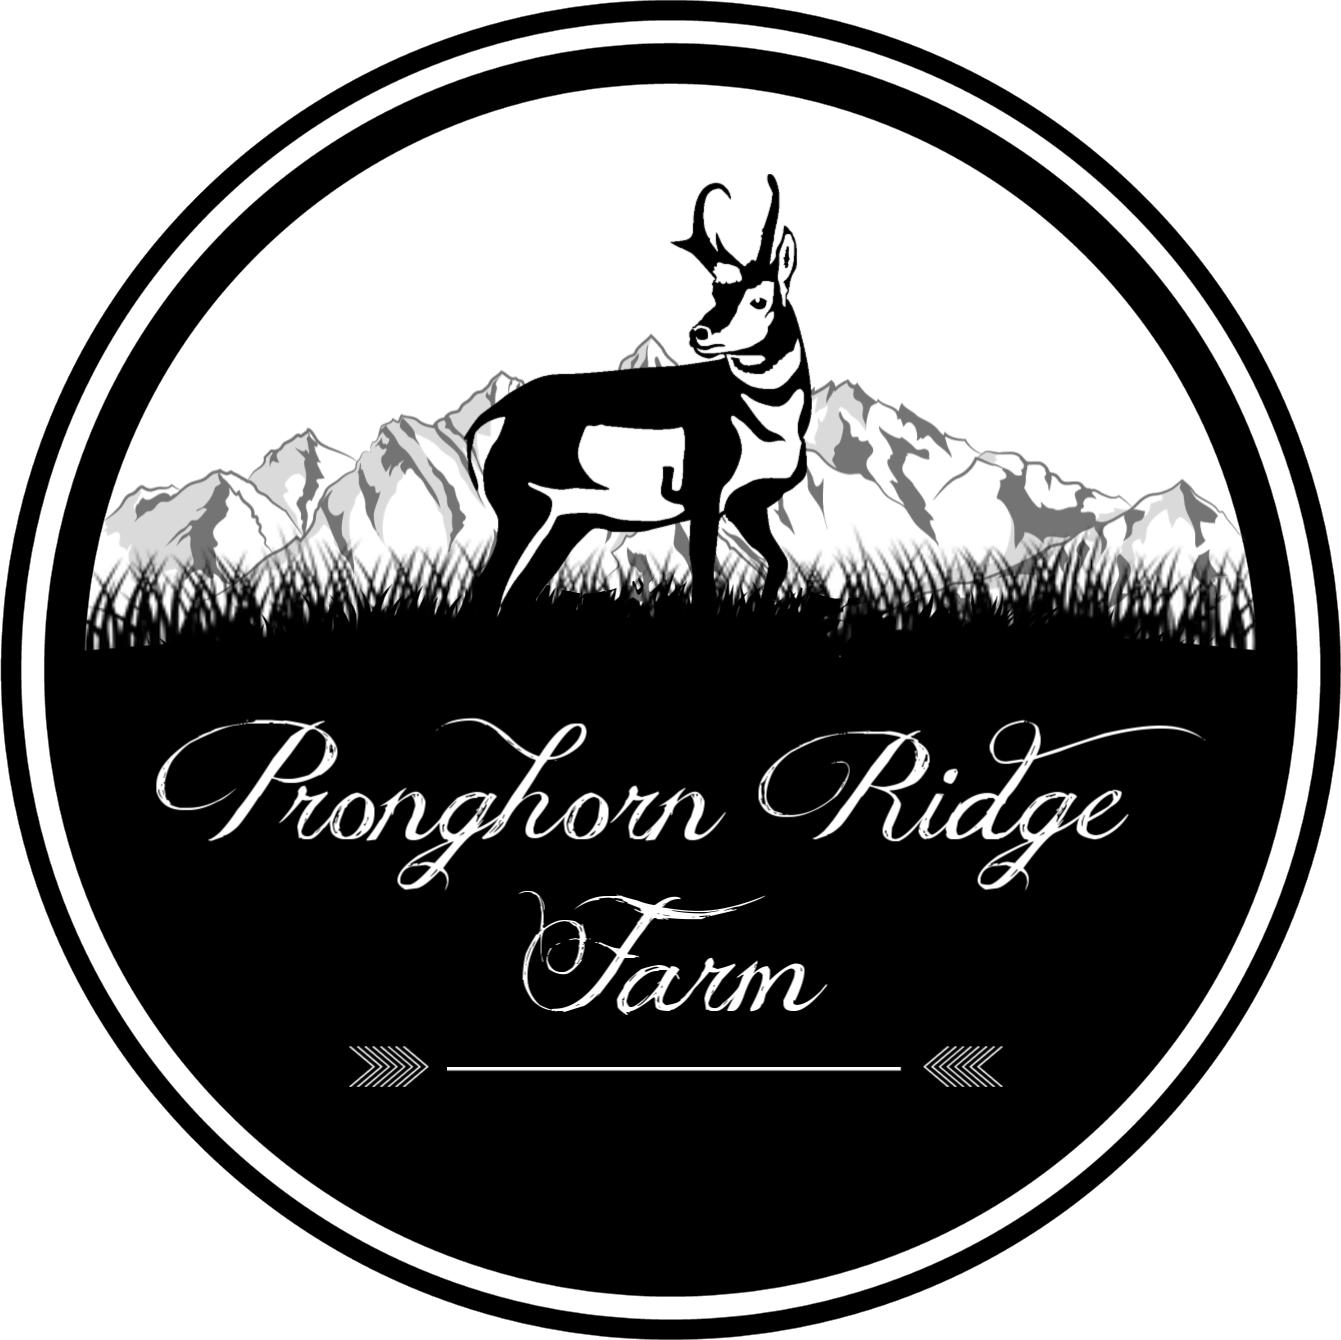 Pronghorn Ridge Farm Logo